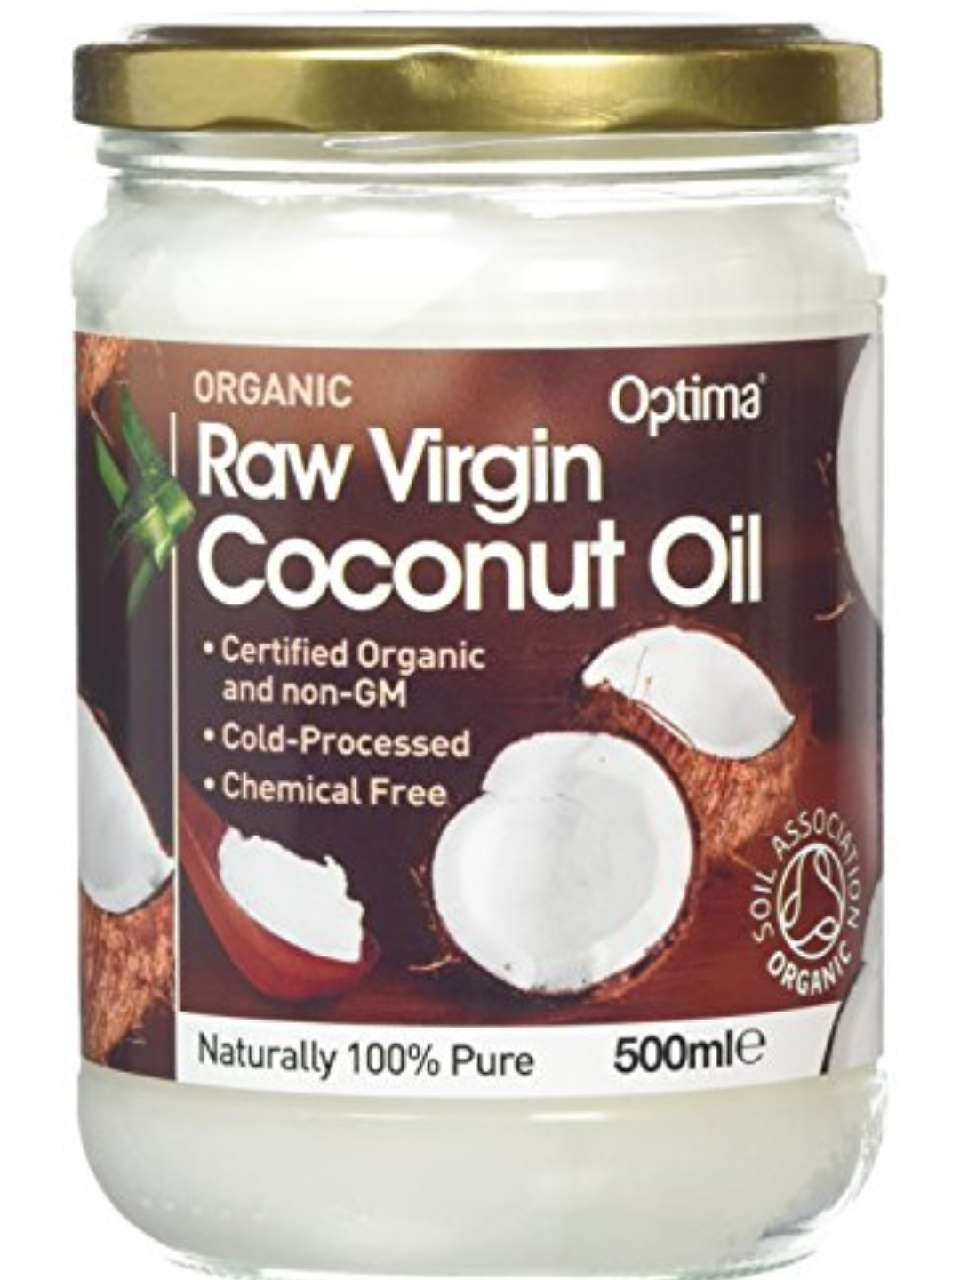 Add about a tablespoon of coconut oil and mix them together.